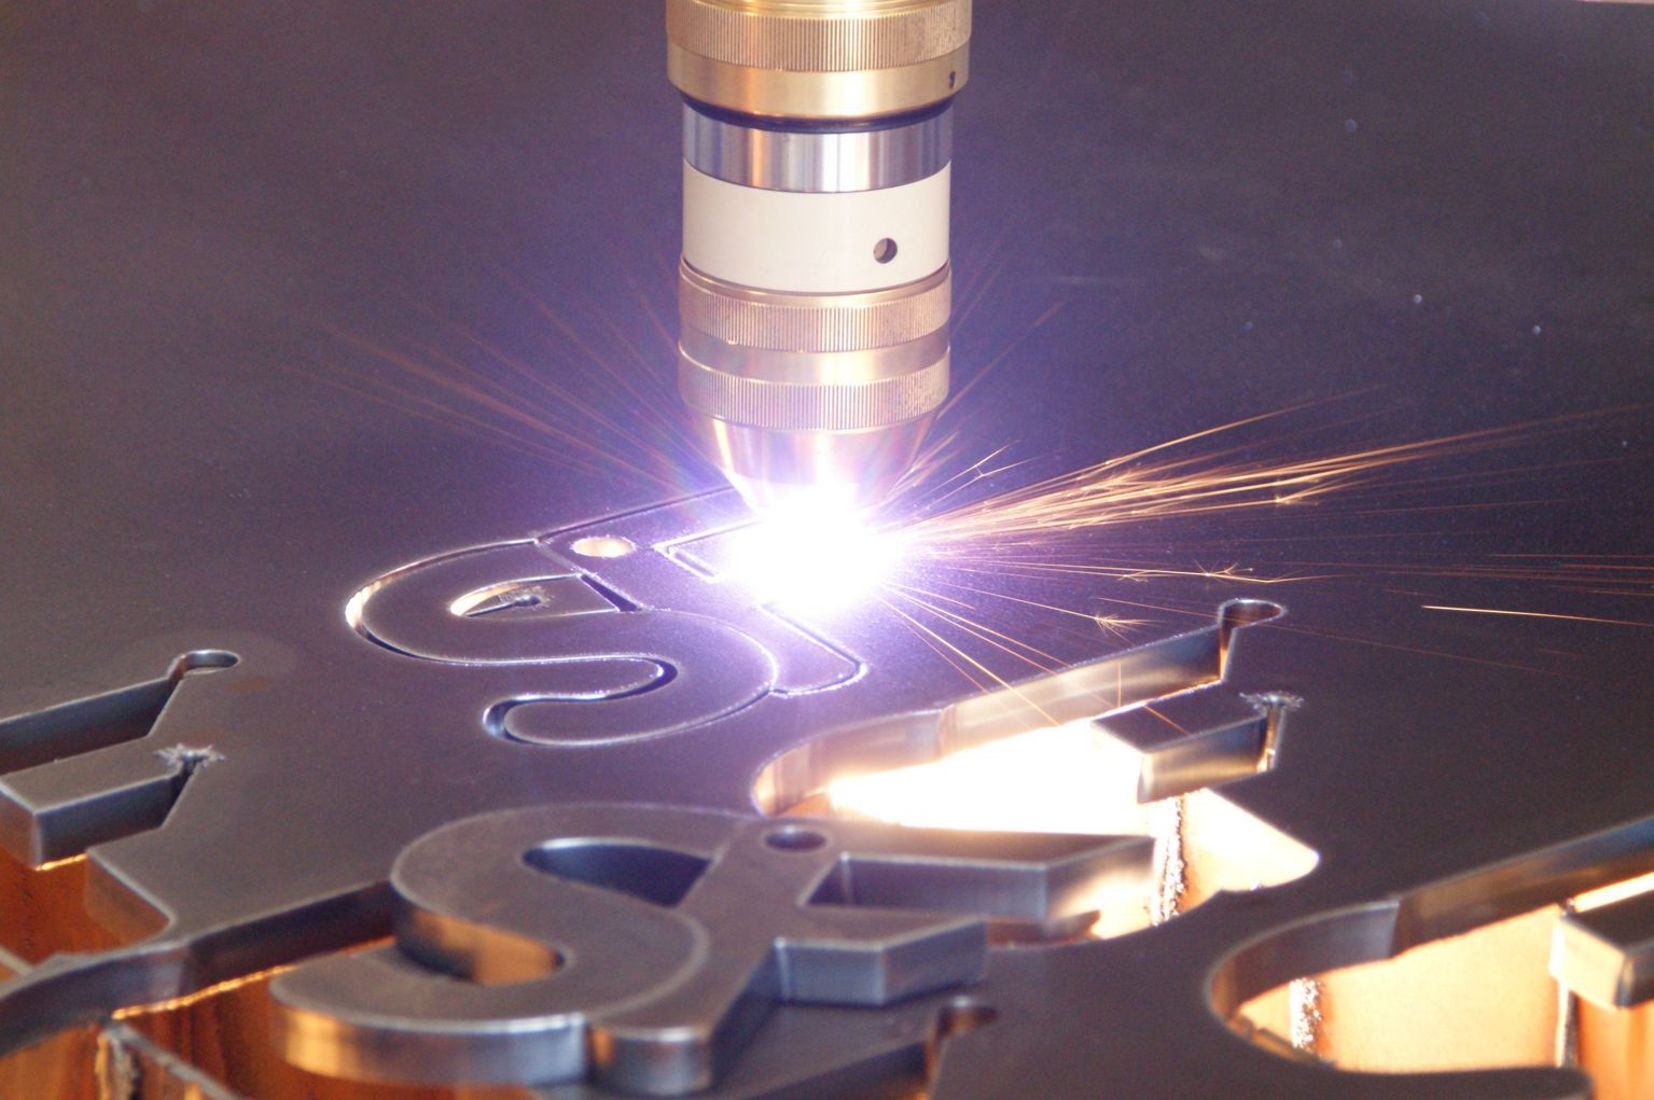 CNC-guided plasma cutting with Smart Focus